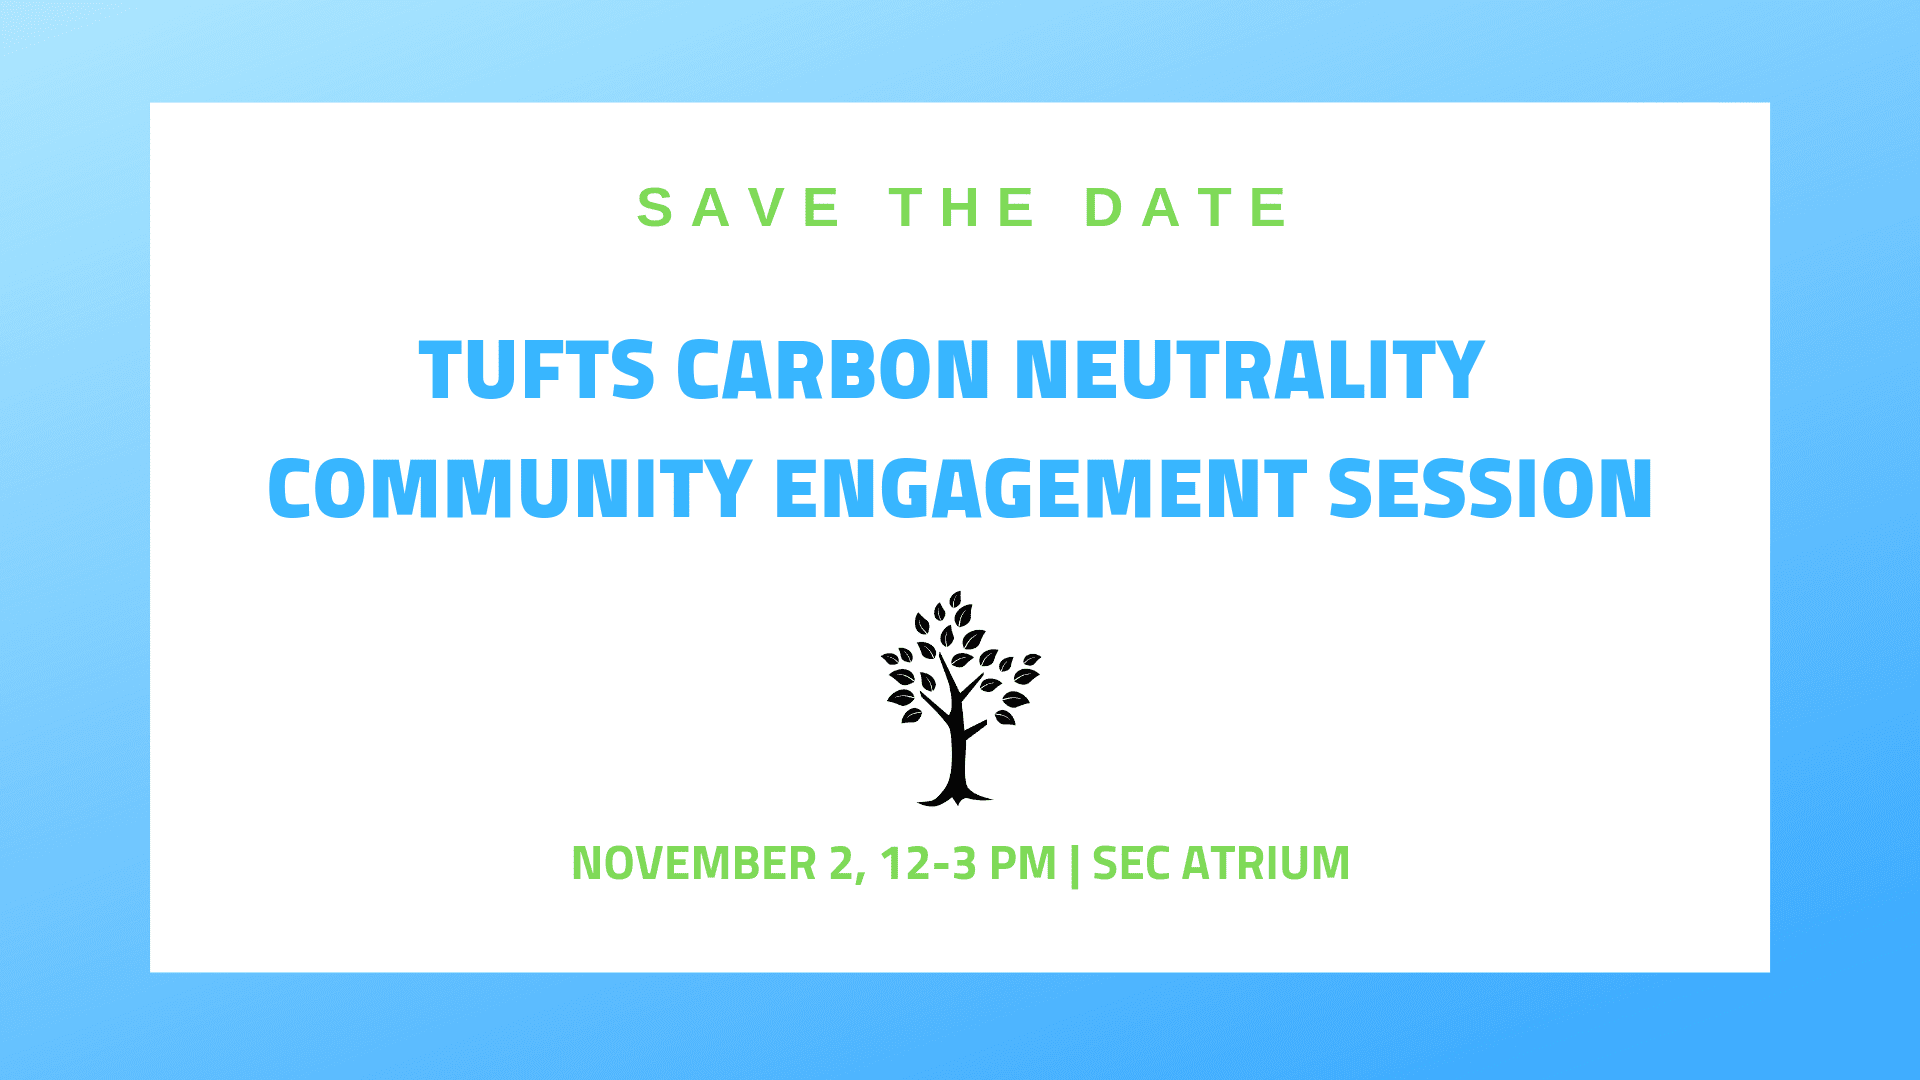 Tufts Carbon Neutrality Community Engagement Session